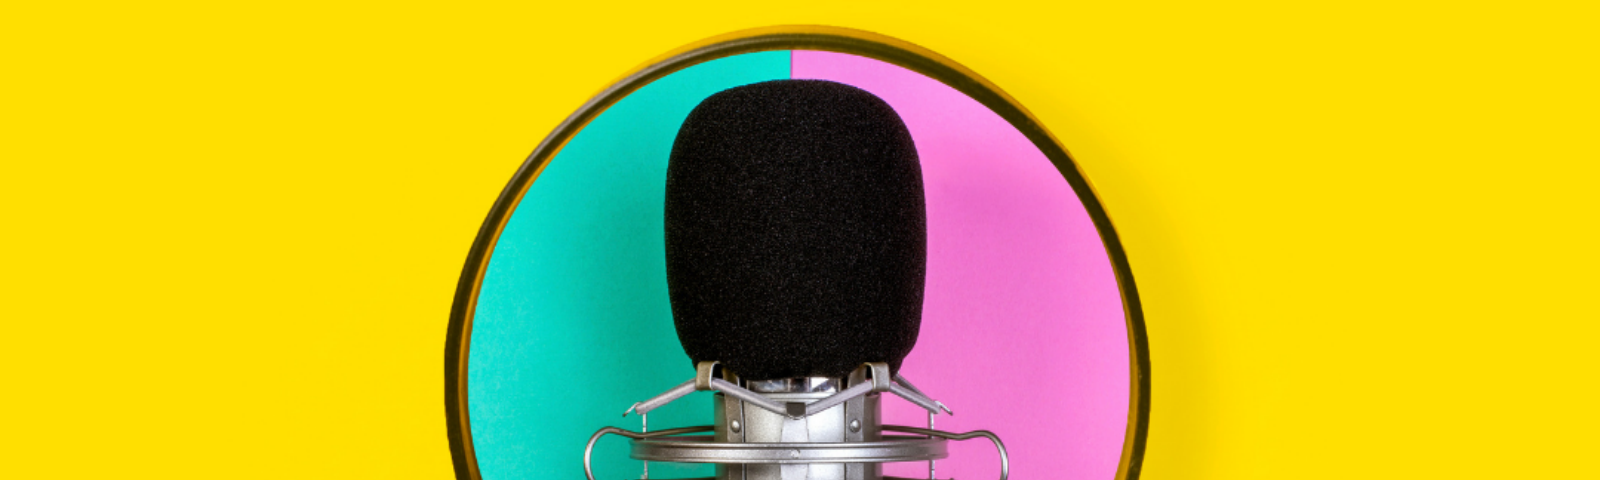 Photo. Against a yellow background, there is a picture of a microphone, that at the same time, is placed against an aqua green and pink background. Credit: Canva